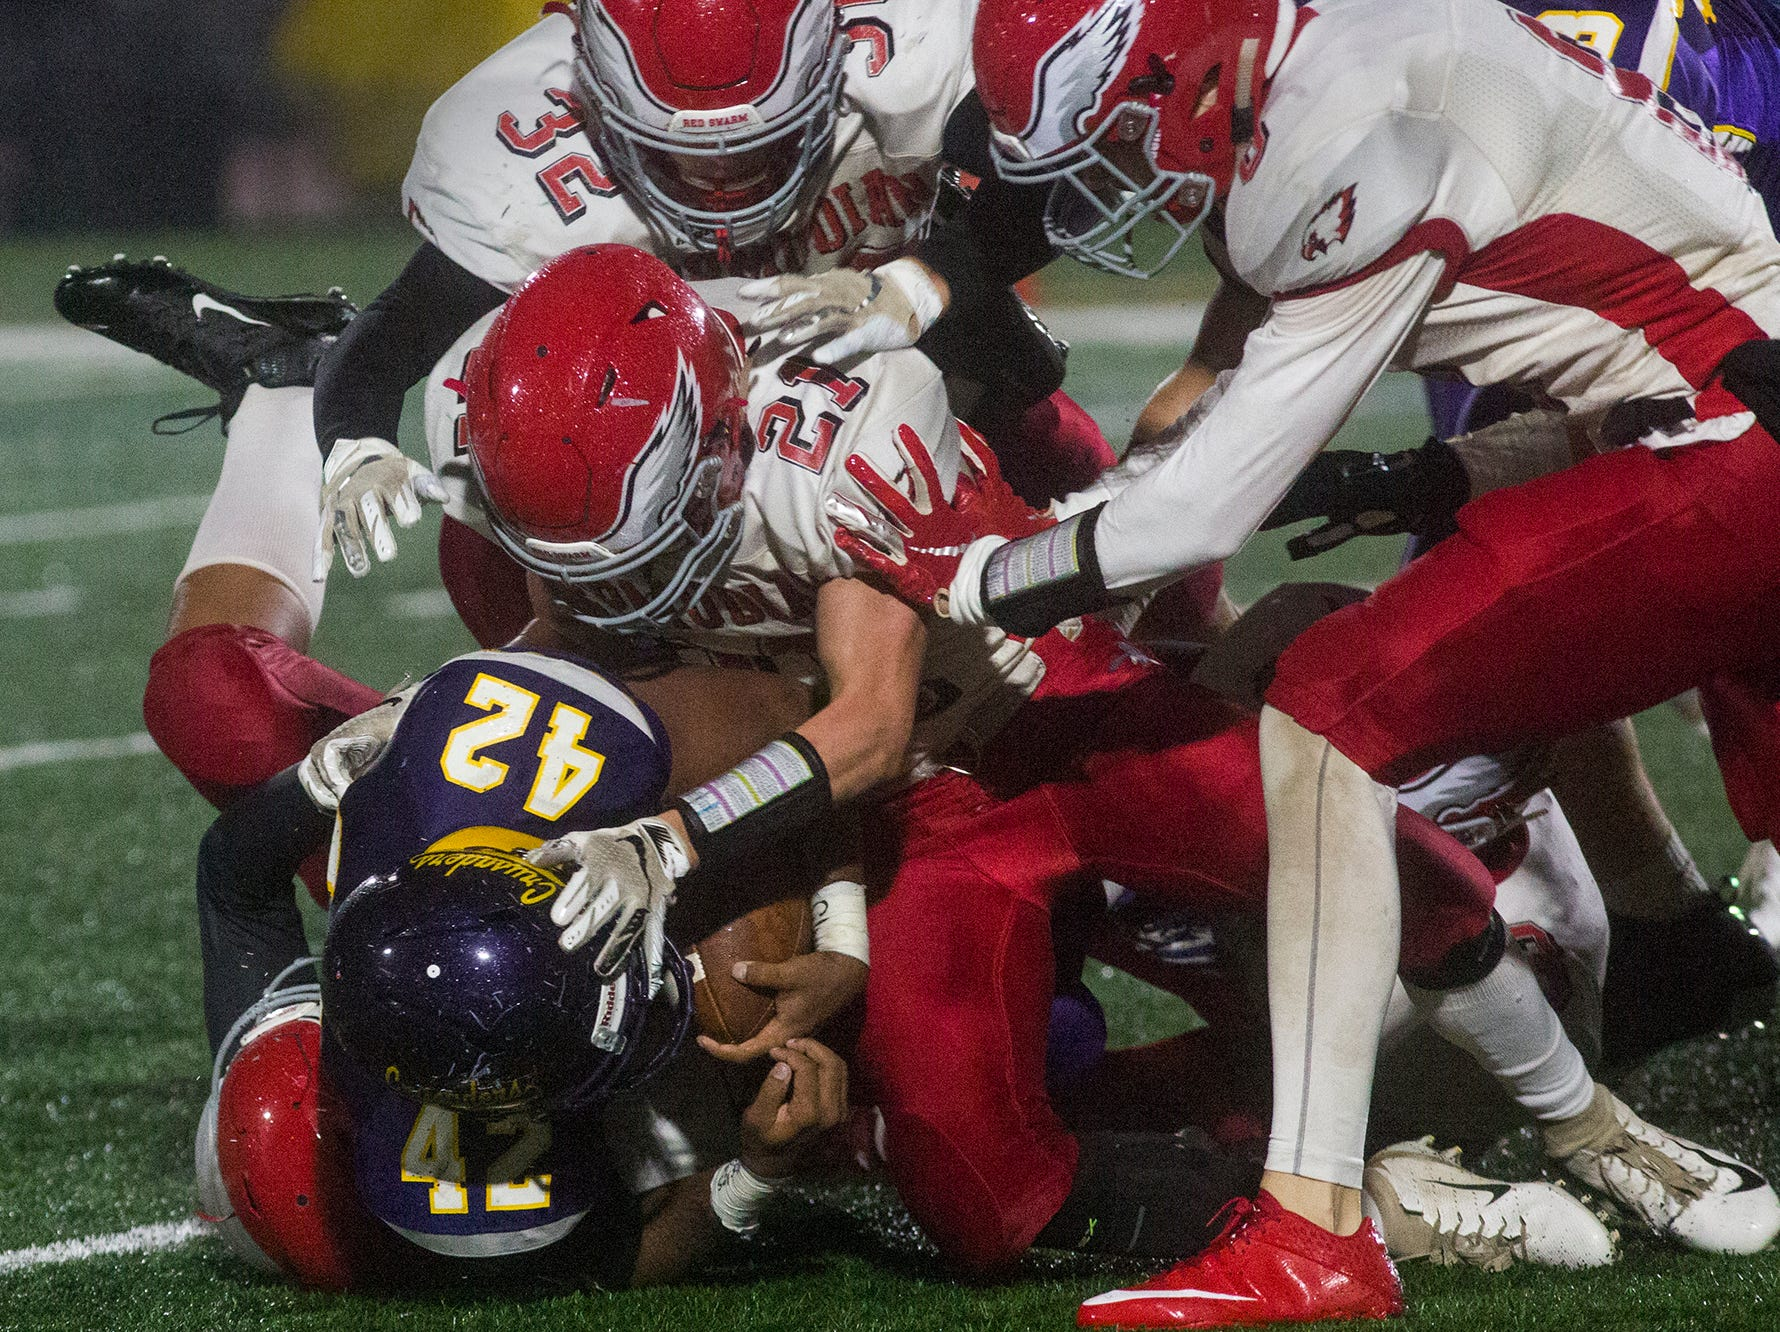 Members of the Bermudian Springs defense tackle Lancaster Catholic's Alex Cruz. Bermudian Springs defeats Lancaster Catholic 20-10 in a District 3 Class 3A semifinal football game at Lancaster Catholic's Crusader Stadium, Friday, November 9, 2018.